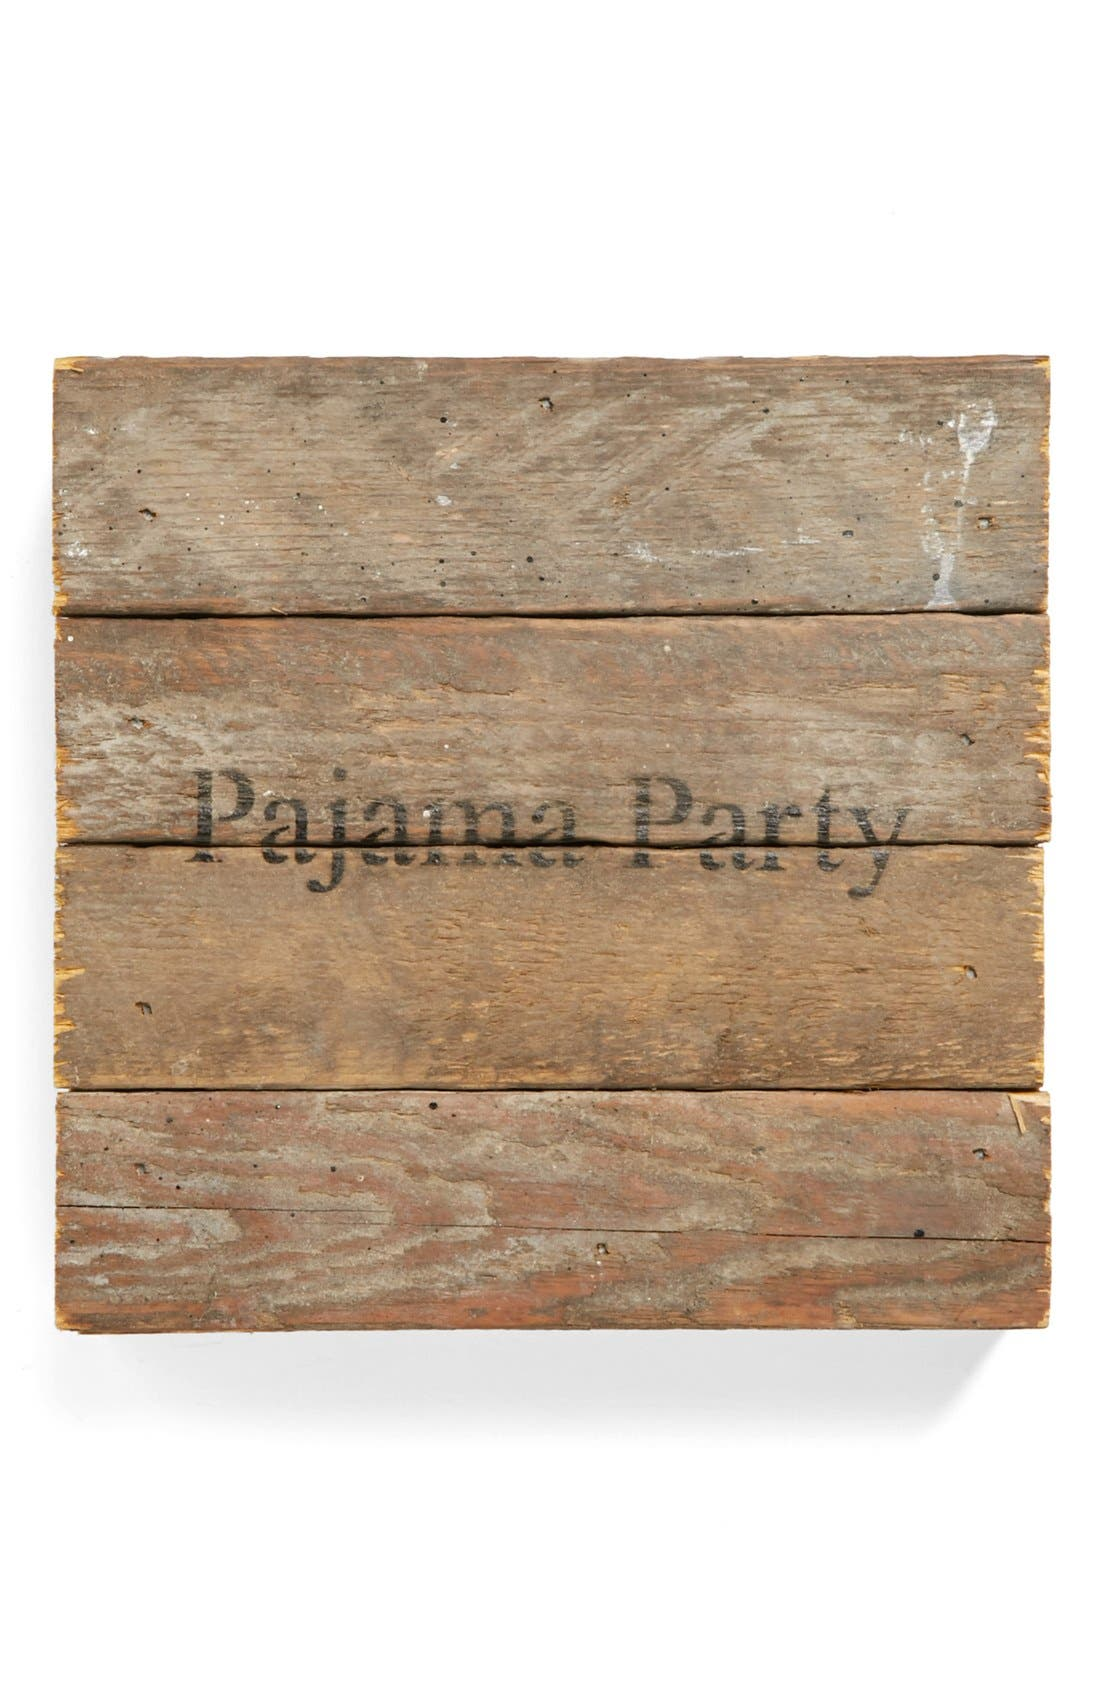 Main Image - Second Nature By Hand 'Pajama Party' Repurposed Wood Wall Art